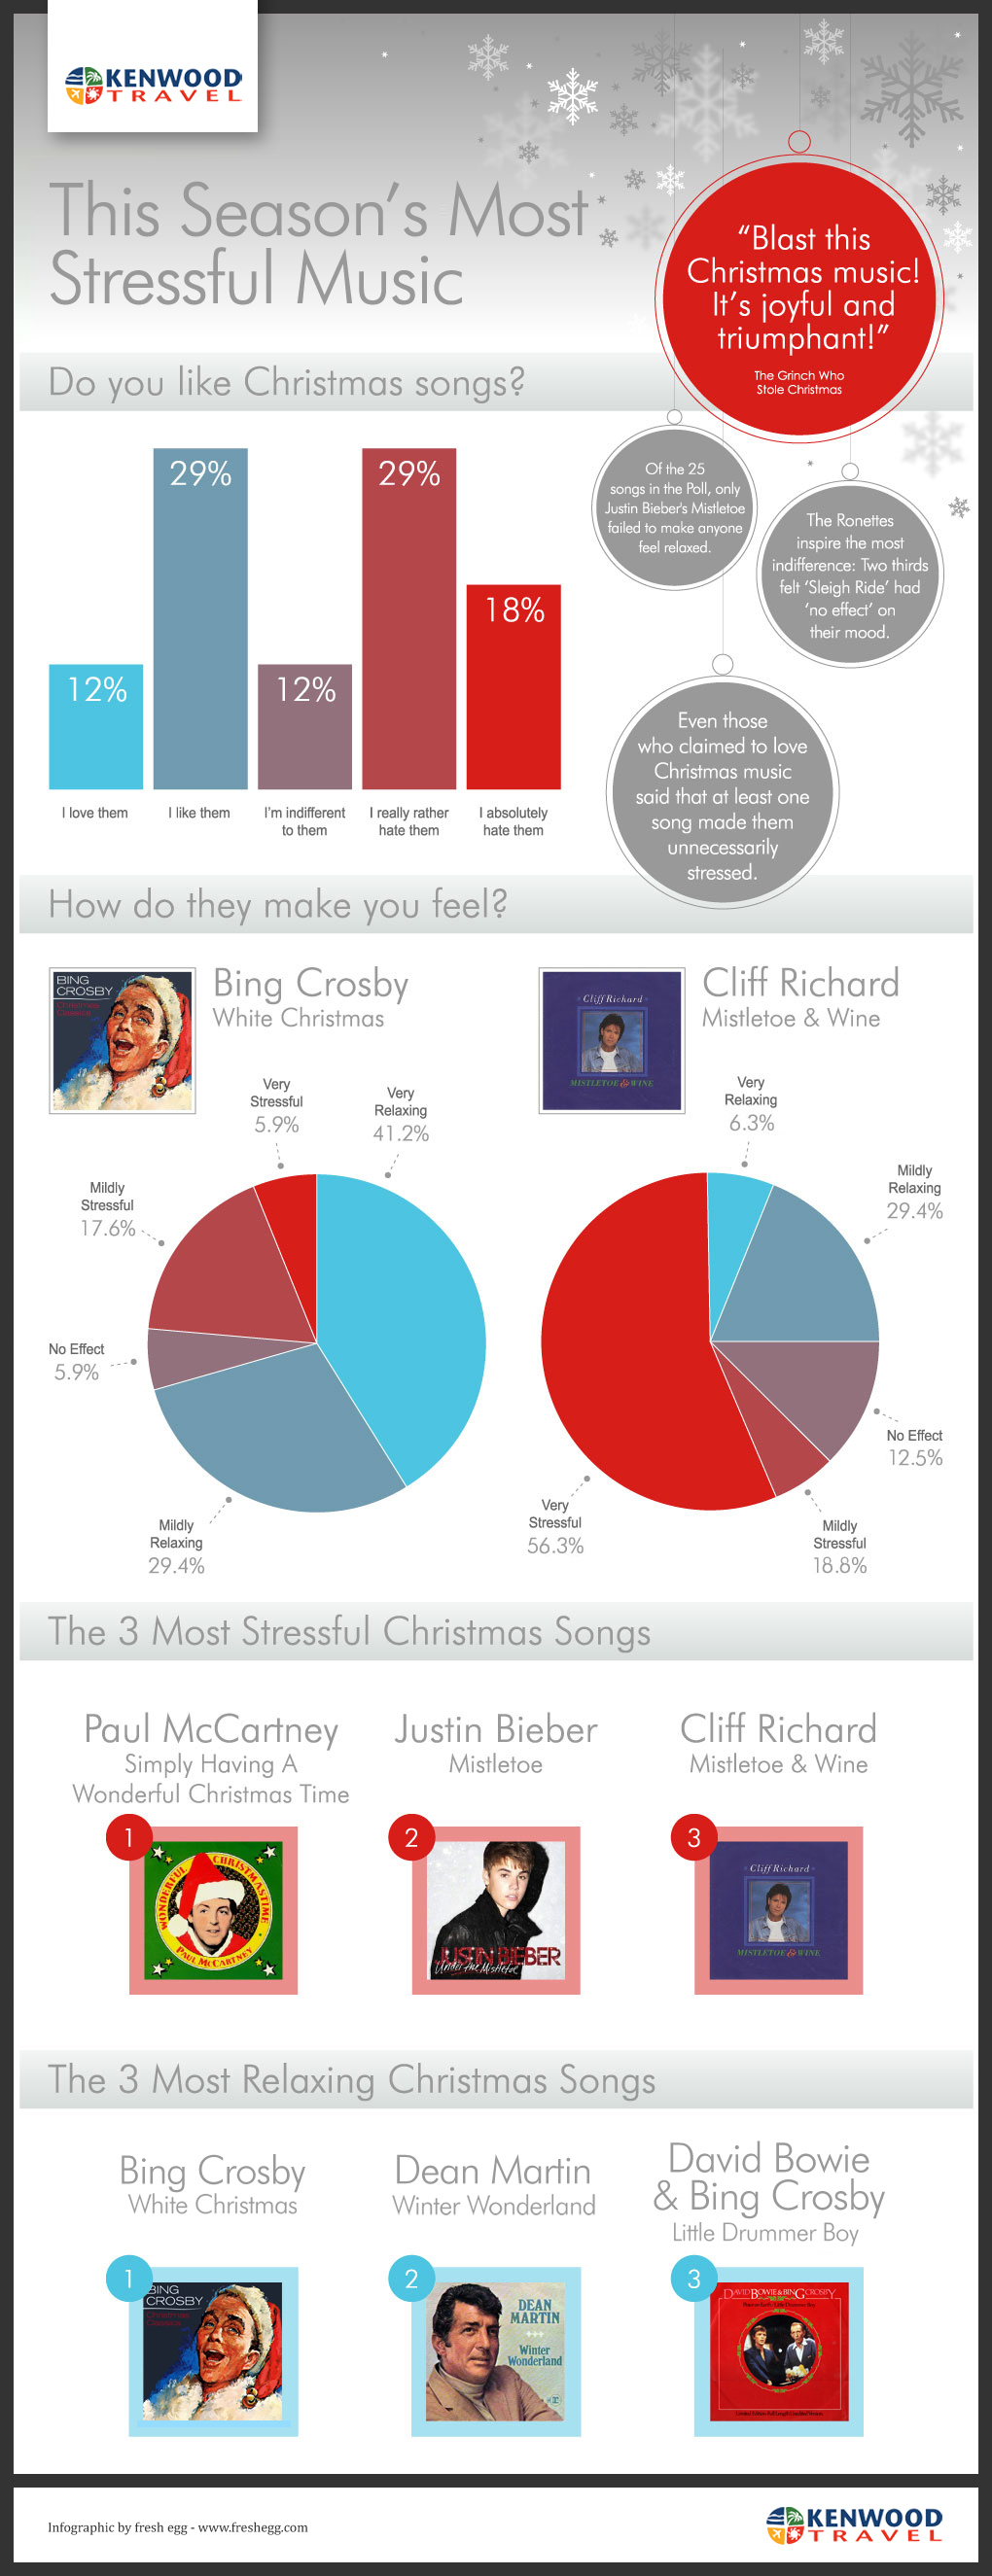 An infographic showing a breakdown of some of our most stressful Christmas songs